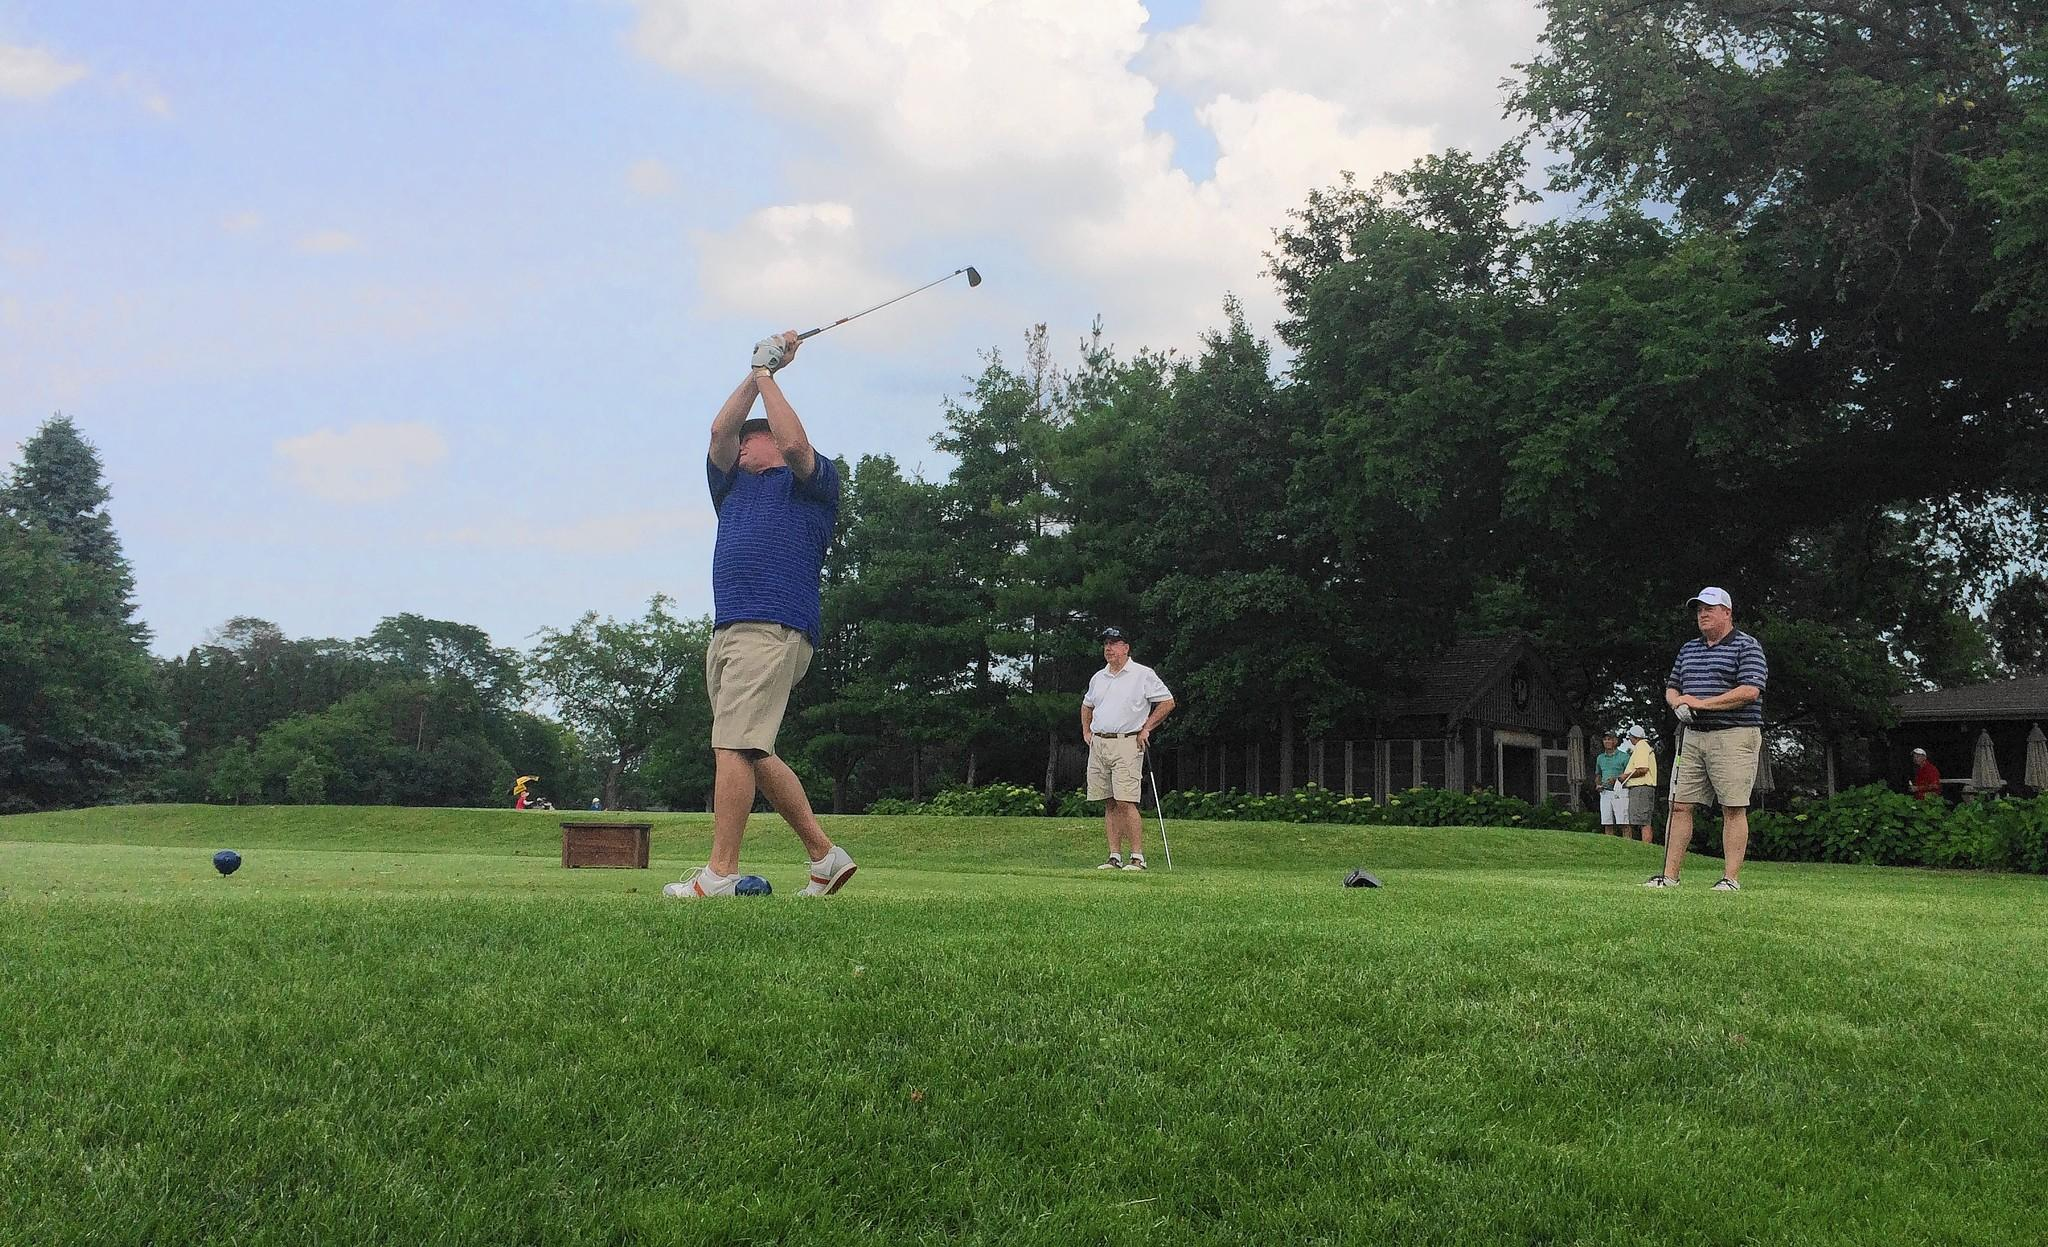 Local residents enjoy playing golf at the Glenview Park Golf Club on Friday, June 27, before the course closes down for a year-long renovation on July 7.